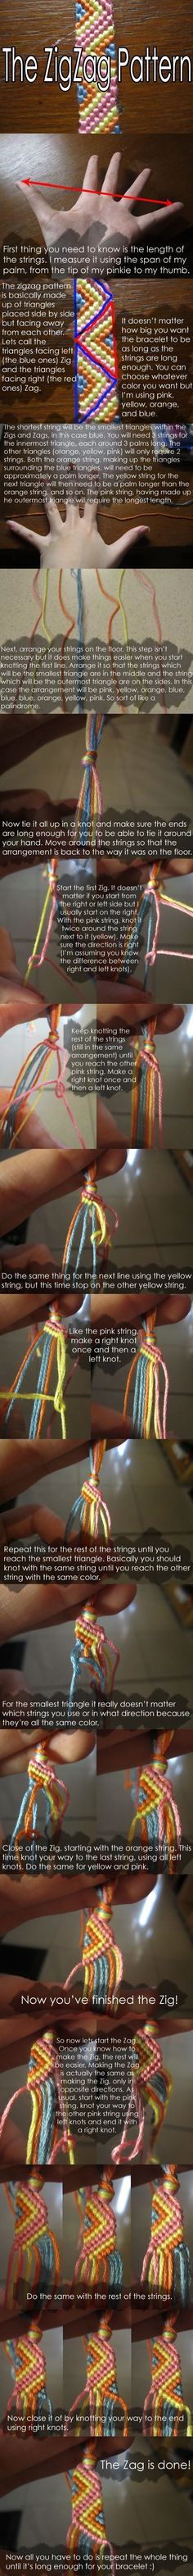 Zigzag Bracelet Tutorial by on deviantART by mvaleriaTutorial: Pop Can Tab BraceletZigzag Bracelet Tutorial always wanted to learn how to do this! by rosellaZigzag Bracelet Tutorial by - most detailed tutorial I've ever seen.Zigzag Bracelet - Made so many Diy Friendship Bracelets Patterns, Diy Bracelets Easy, Summer Bracelets, Bracelet Crafts, Cute Bracelets, Can Tab Bracelet, Kumihimo Bracelet, Macrame Bracelets, String Bracelets